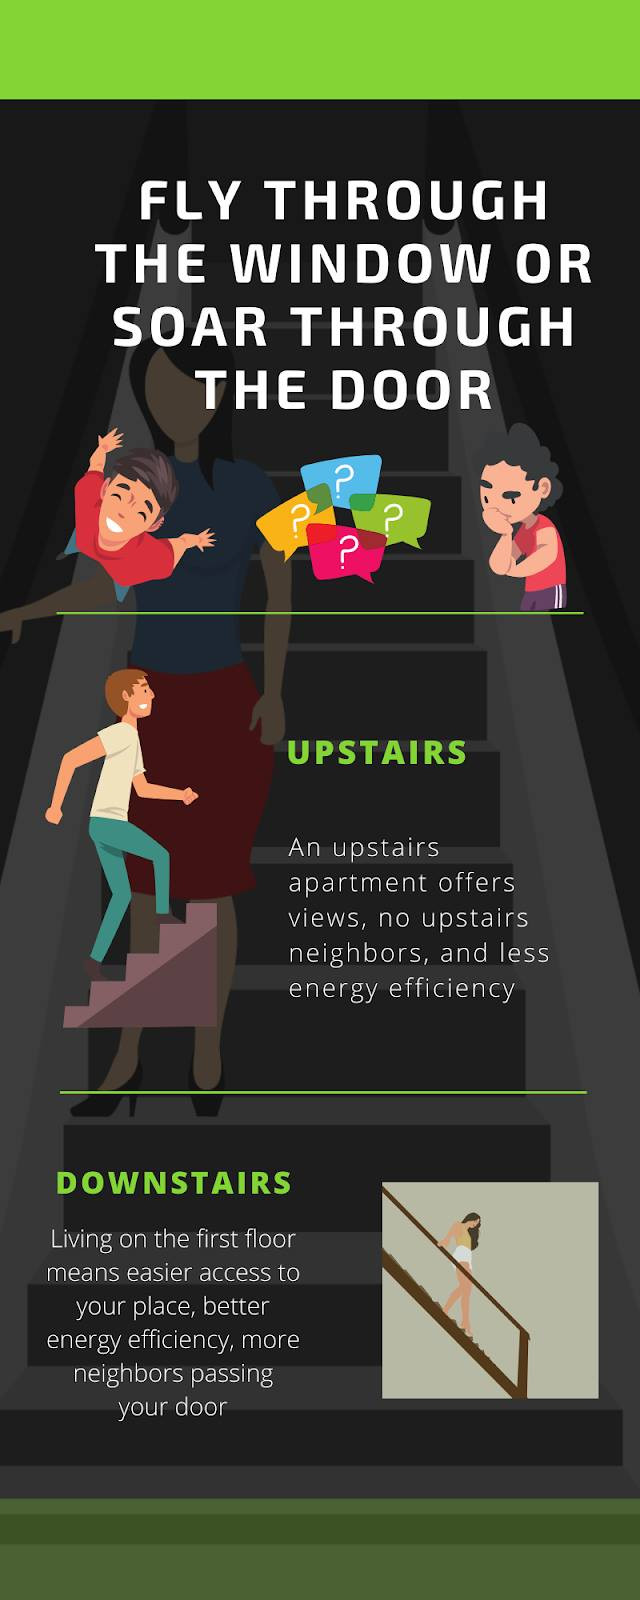 Infographic discussing the pros and cons of an upstairs or downstairs apartment.